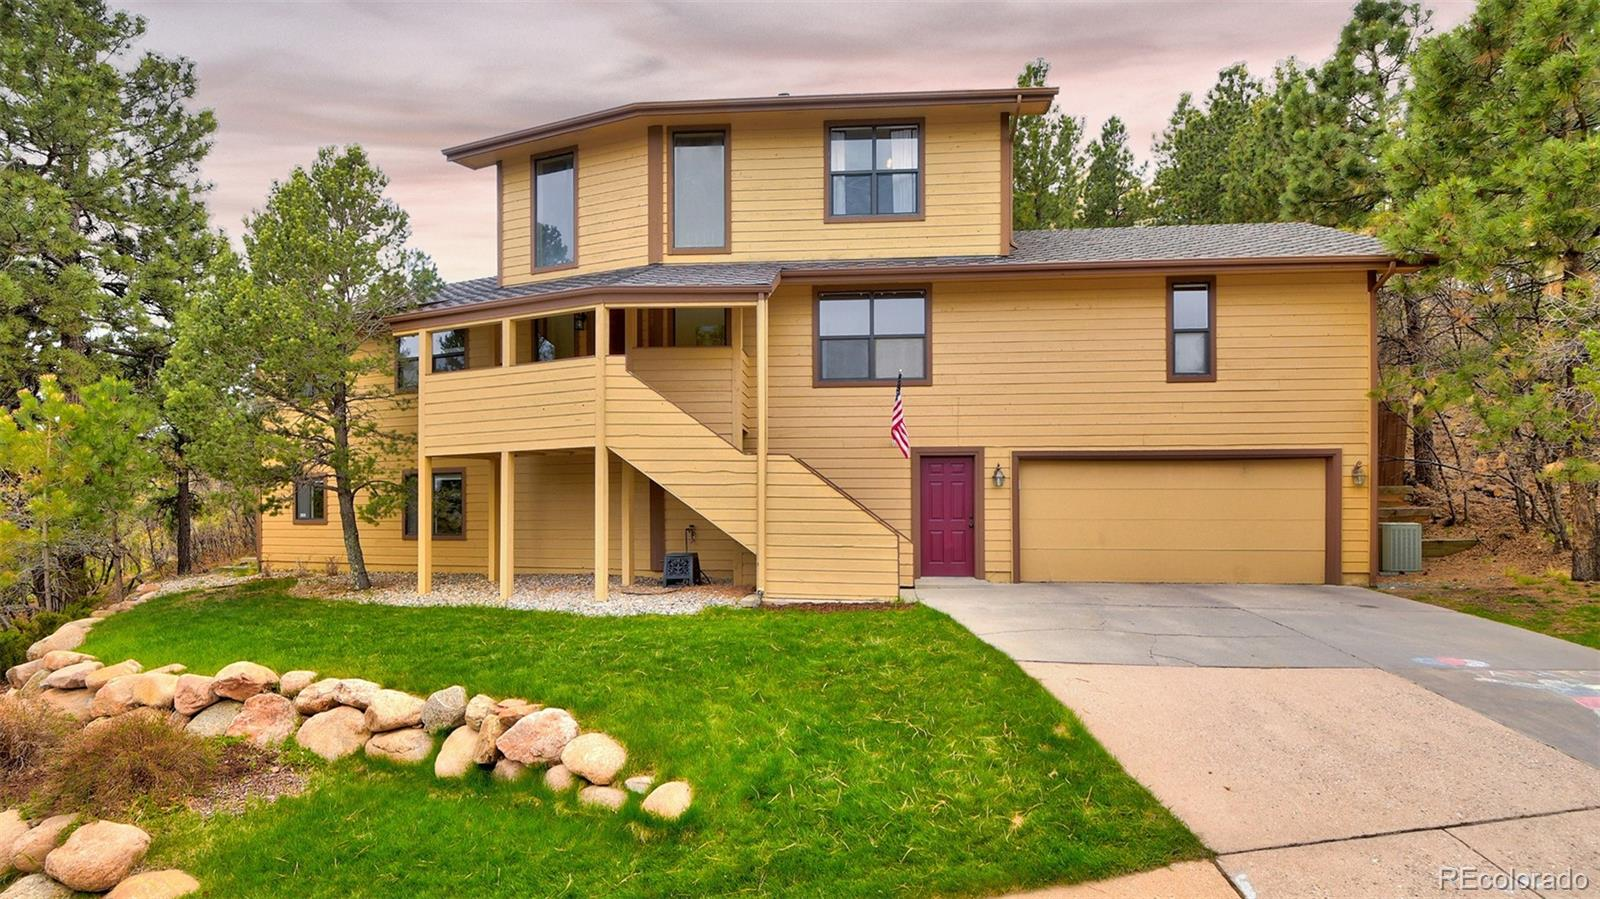 7530 Delmonico Drive, Colorado Springs, CO 80919 - Colorado Springs, CO real estate listing